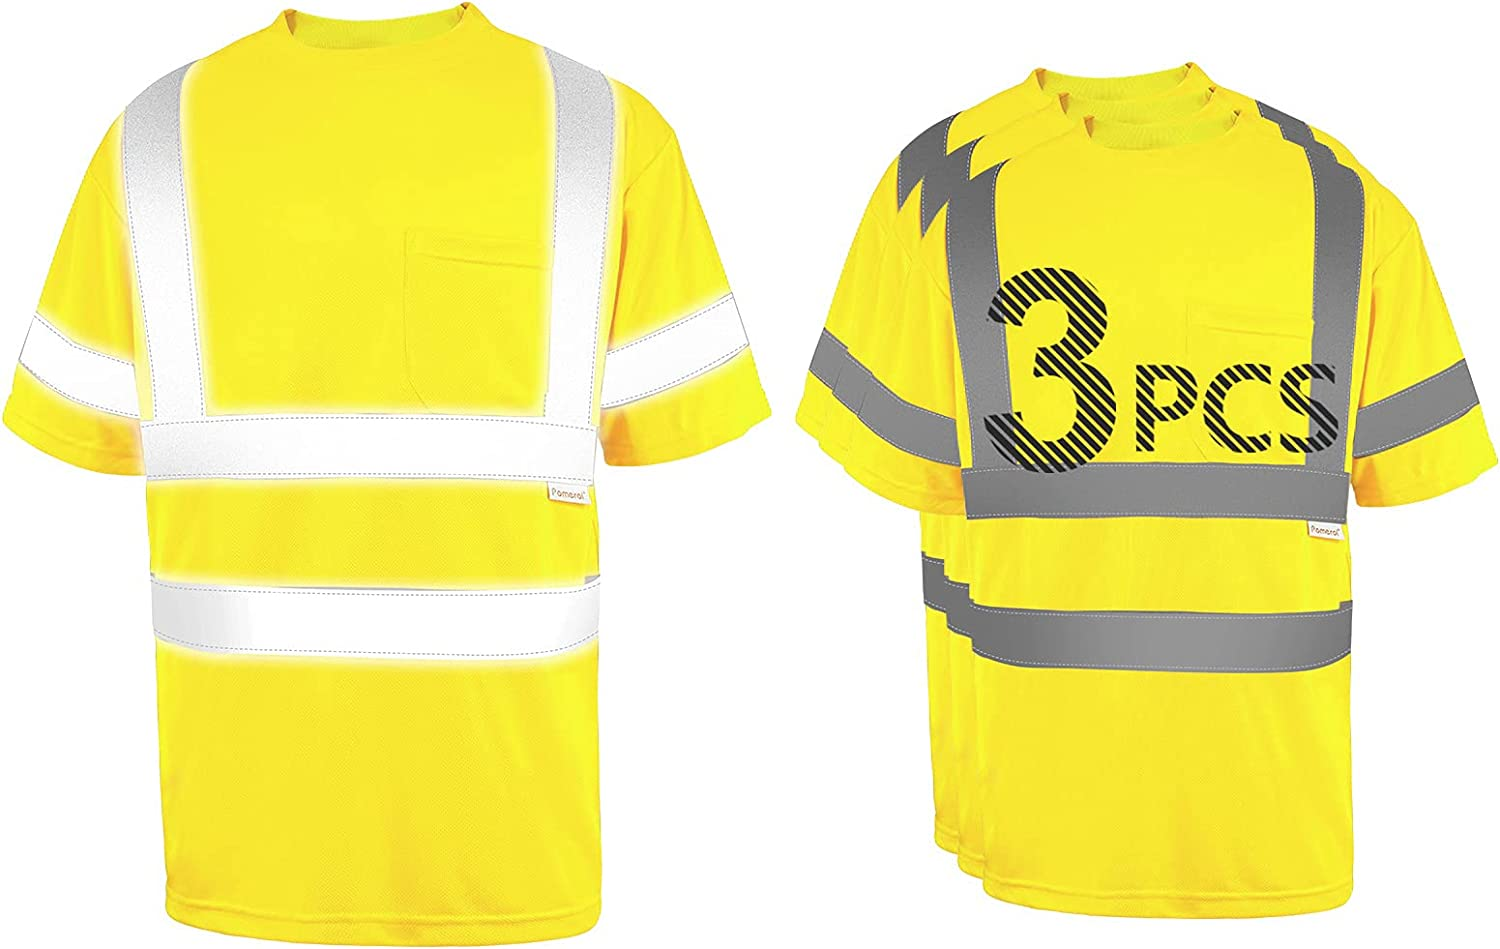 Pomerol High-Visibility Reflective Safety Packs Shirt Breathab 3 Many popular brands Large special price !!